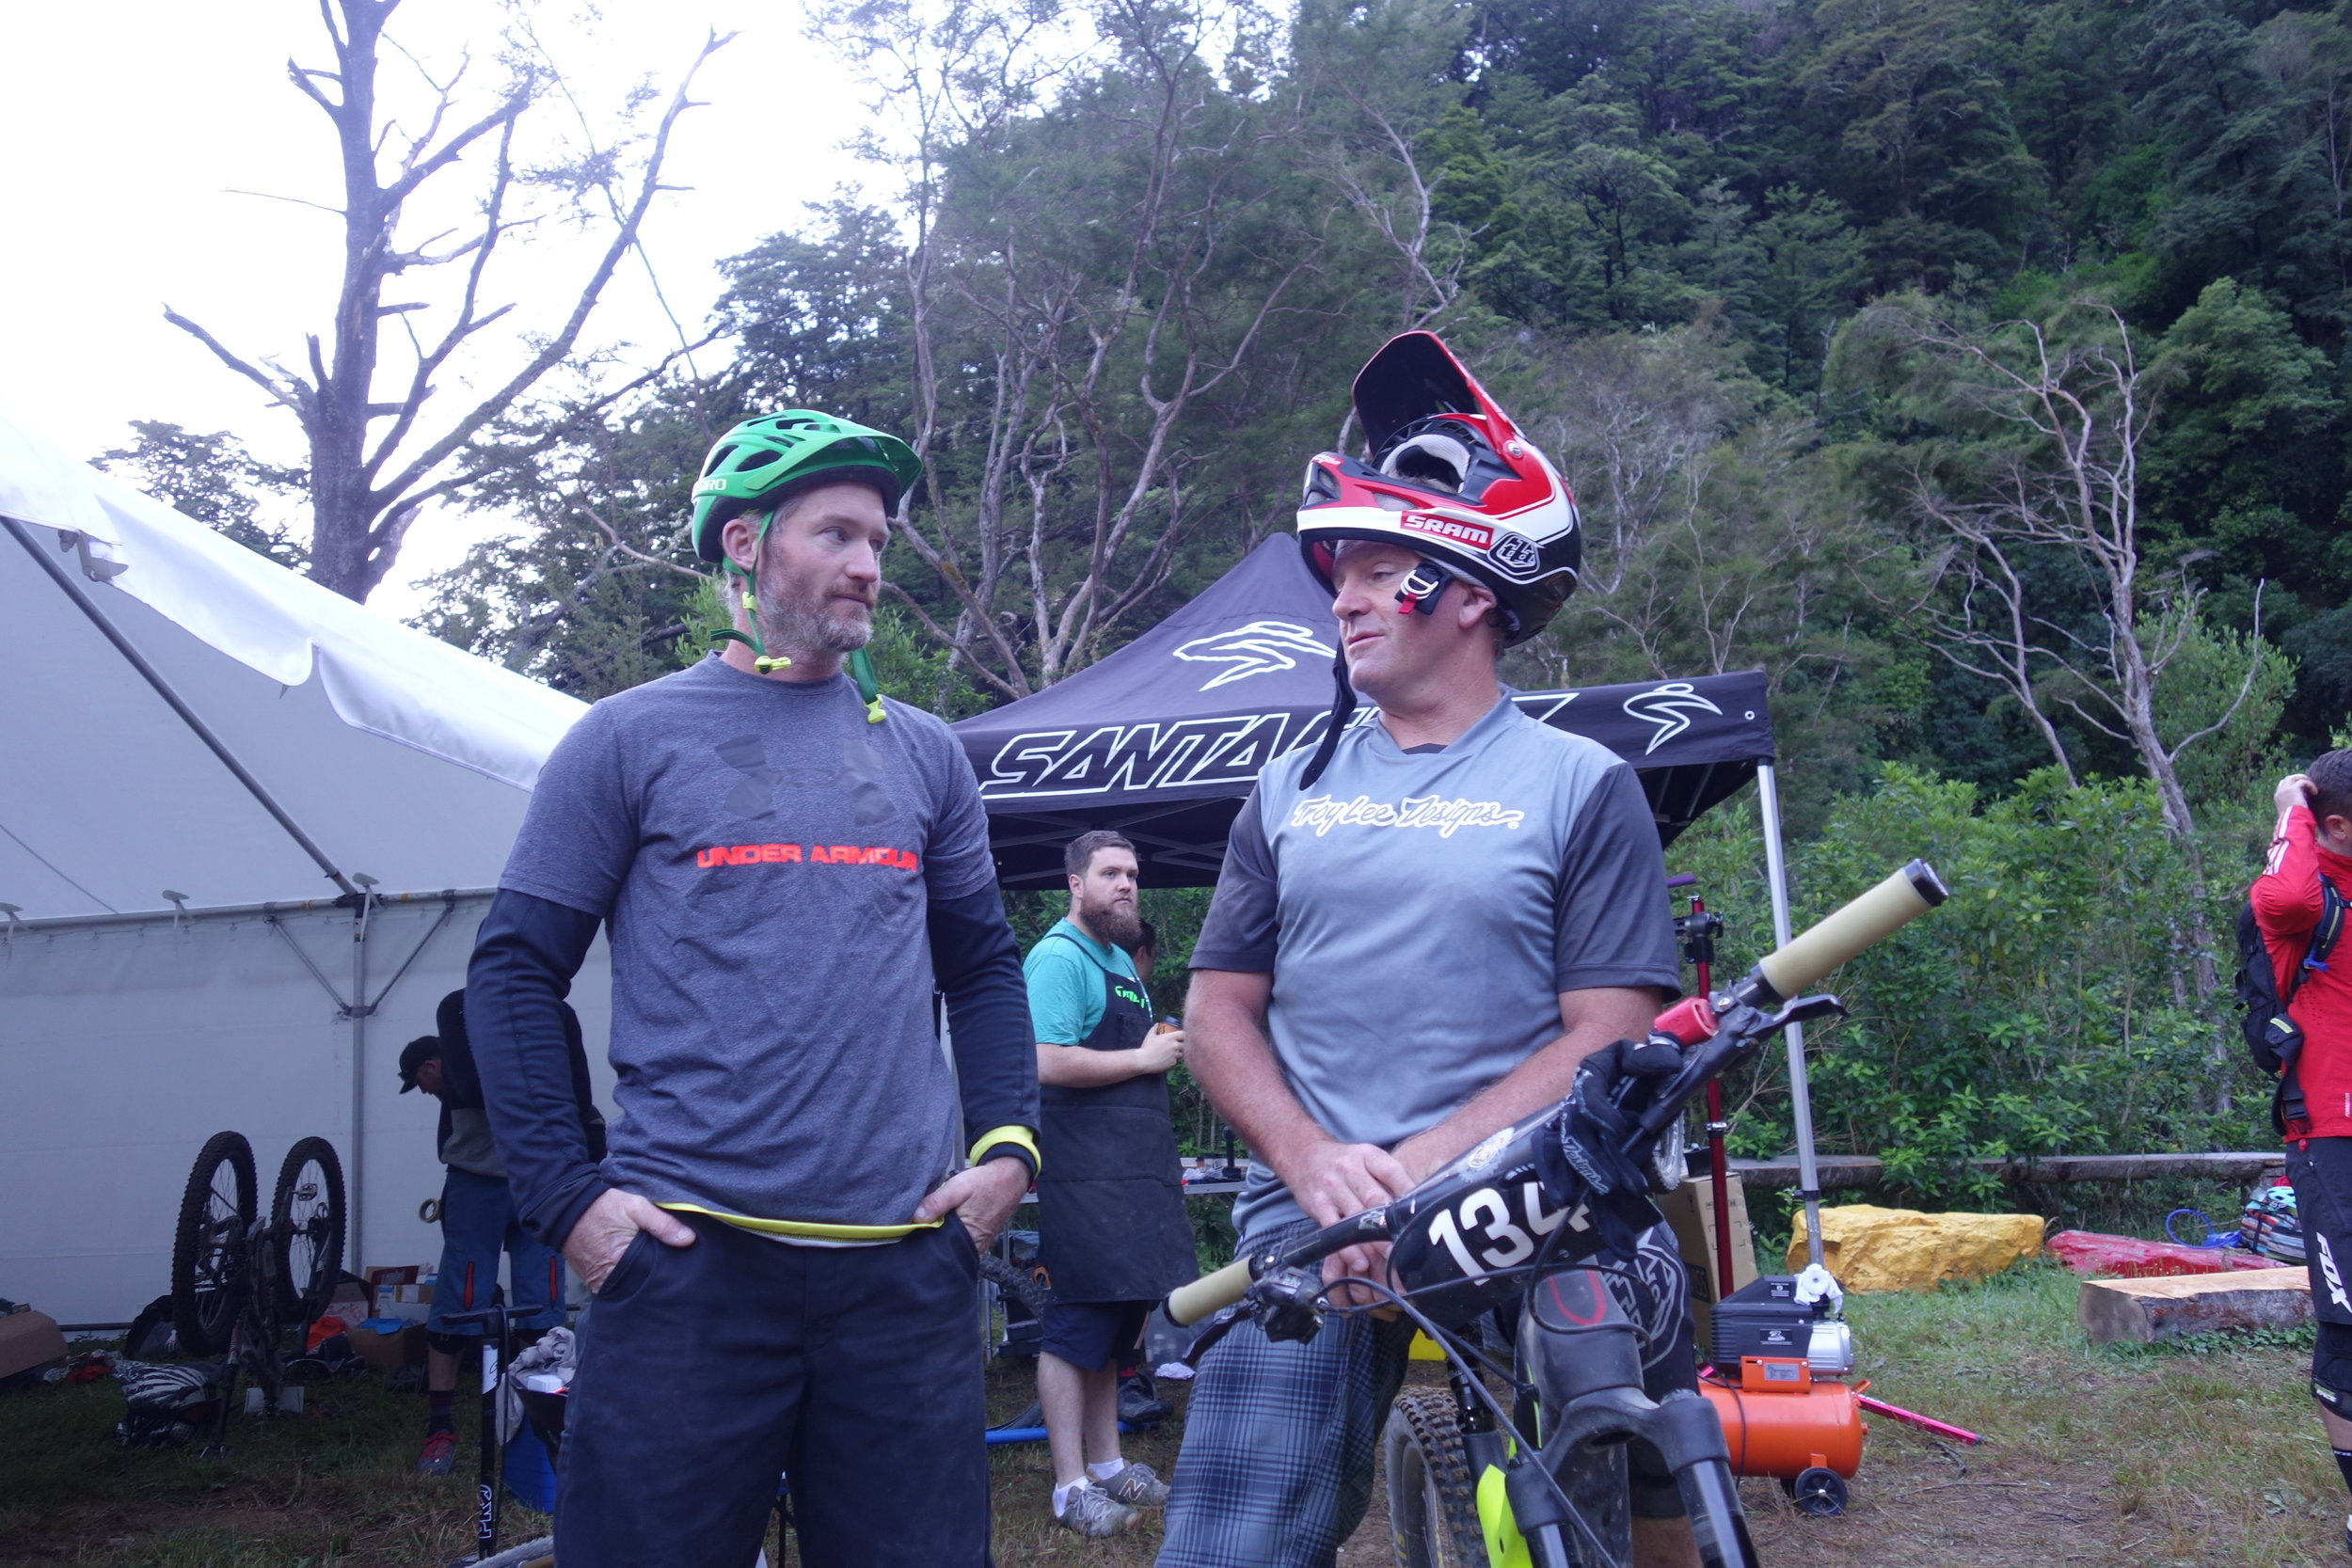 Legends of a bygone era. Ex 90's top DH'er Hadley Boyce on the left who rides about once a month yet still kicks ass (bastard) and my nemesis Hendi on the right who was a pro moto rider then NZ's first pro mountainbiker (who never let me win a race)then V8 and GT3 racer, and now back into motocross where he recently came #2 in his classification at the World Motocross Champs.